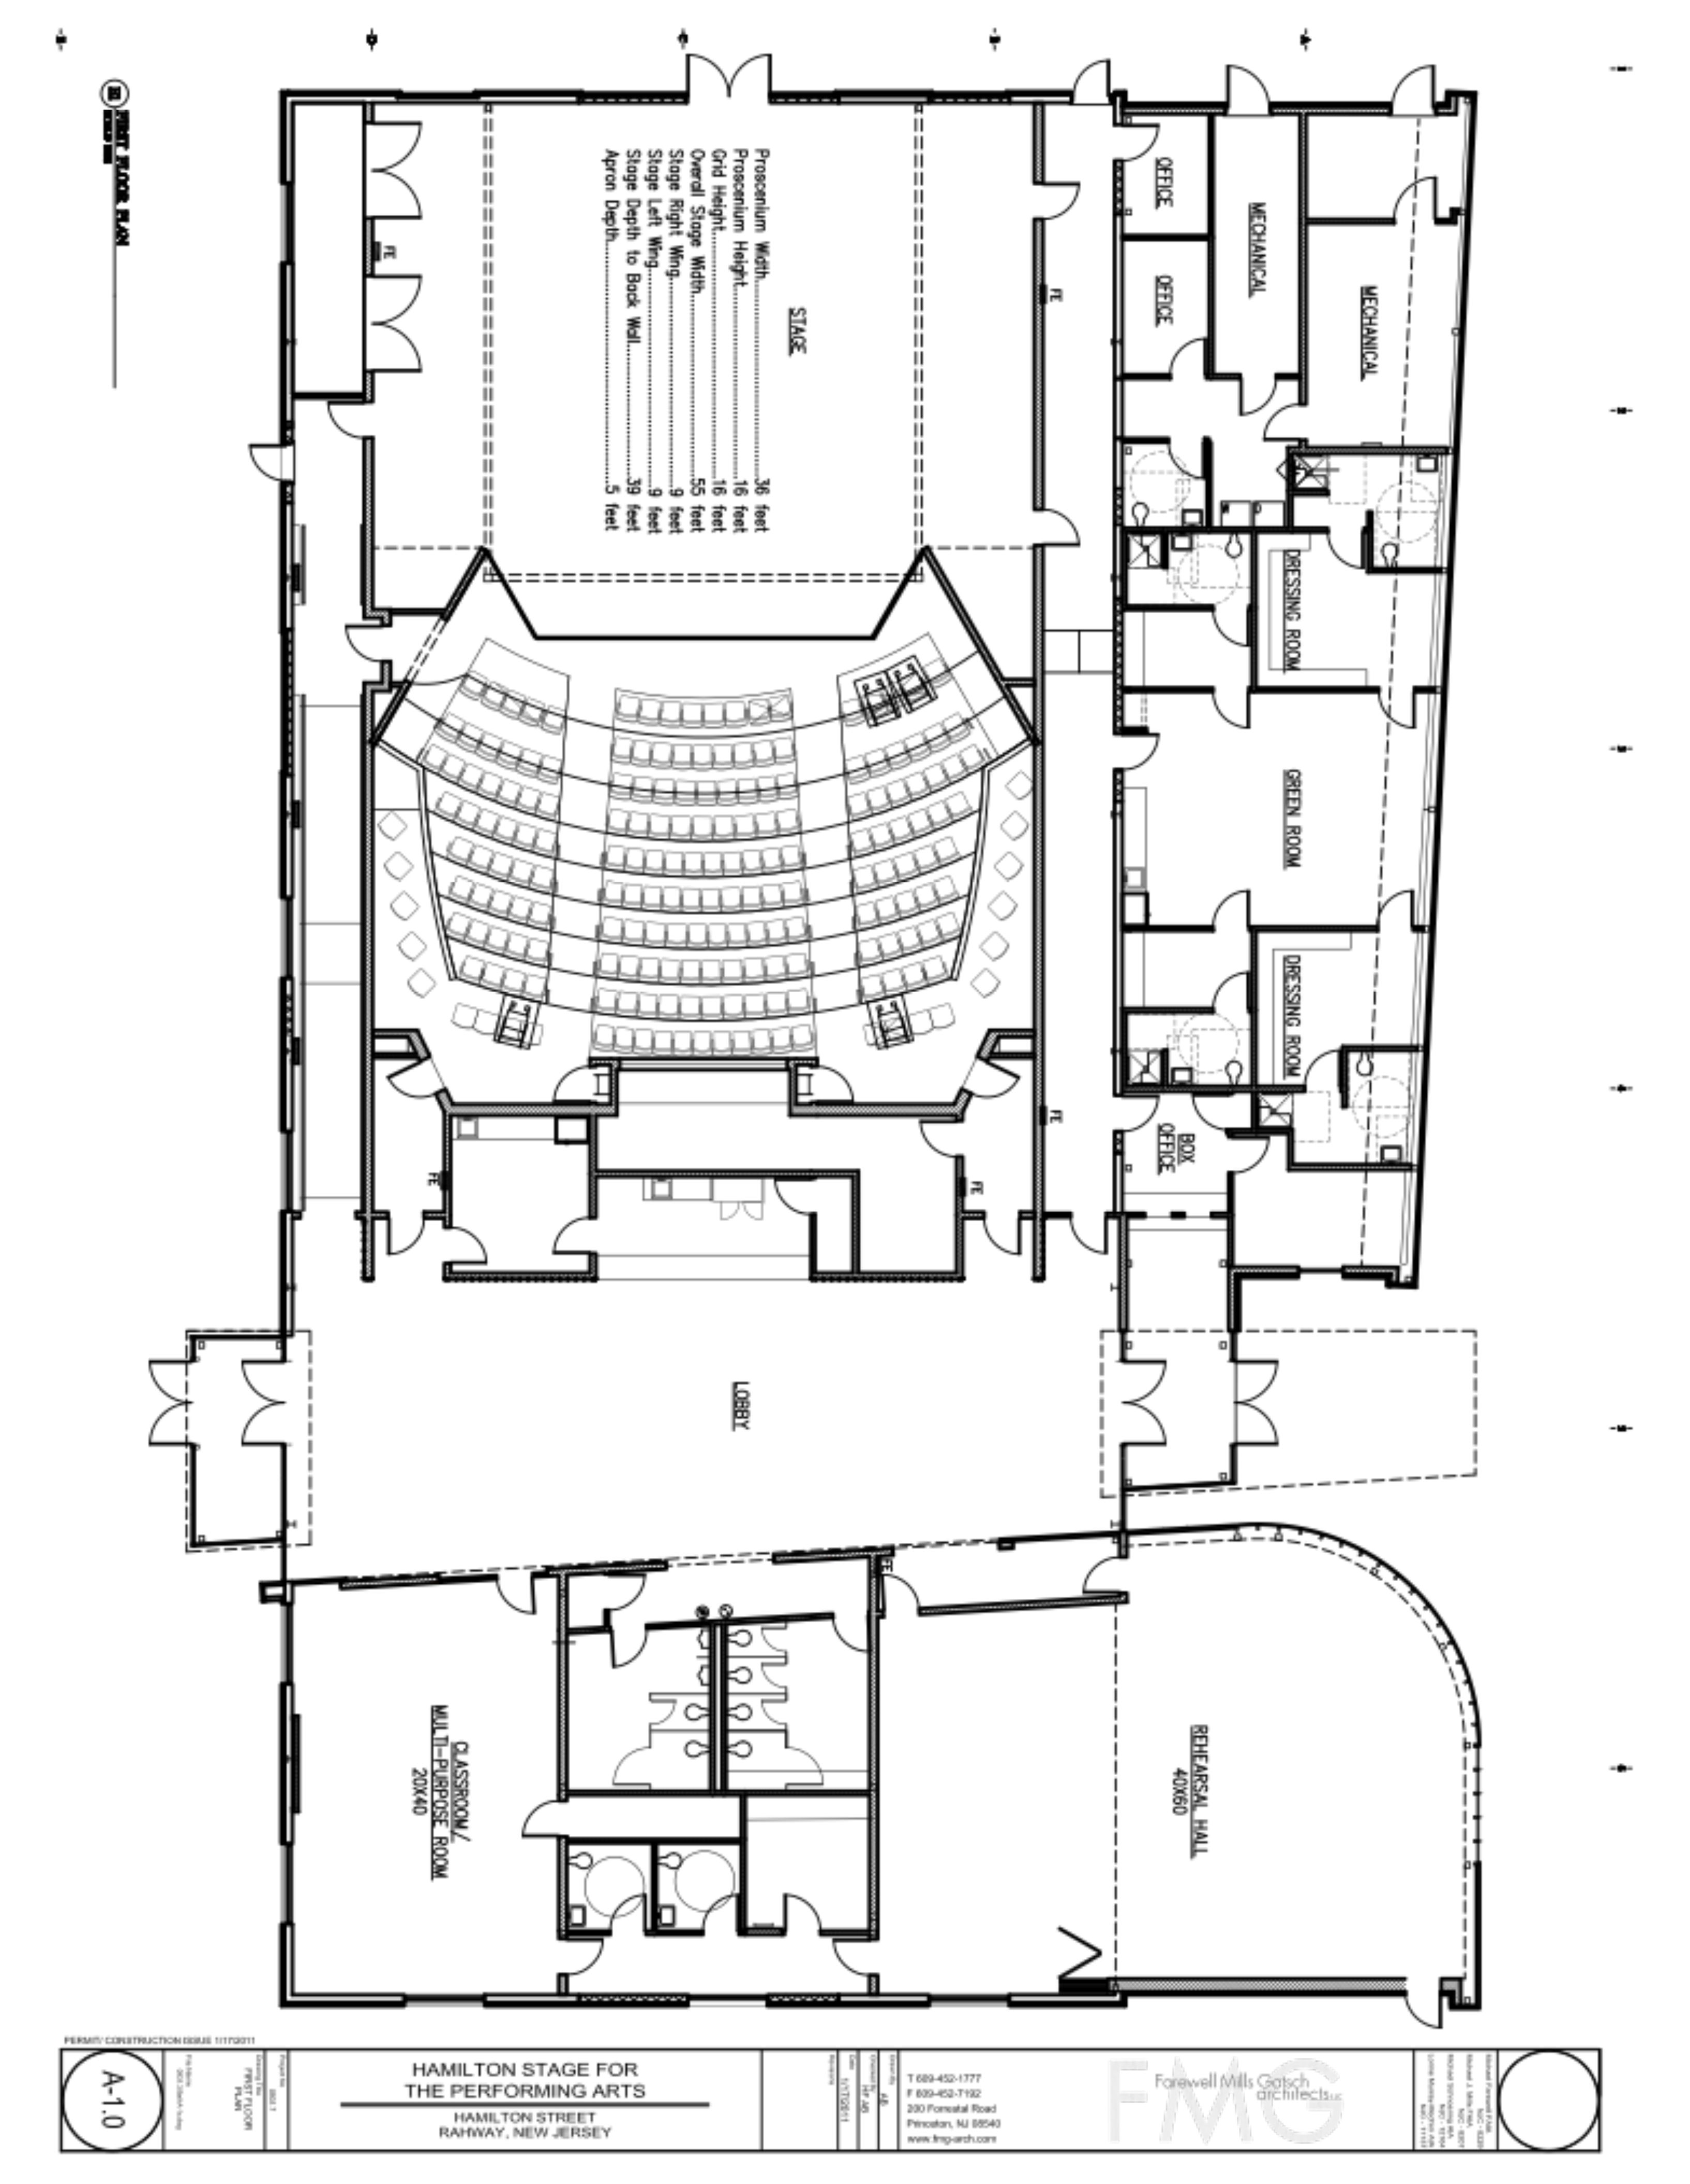 Pin By Mr On Vd Scenic Design Theatreland Floor Plans Scenic Design How To Plan